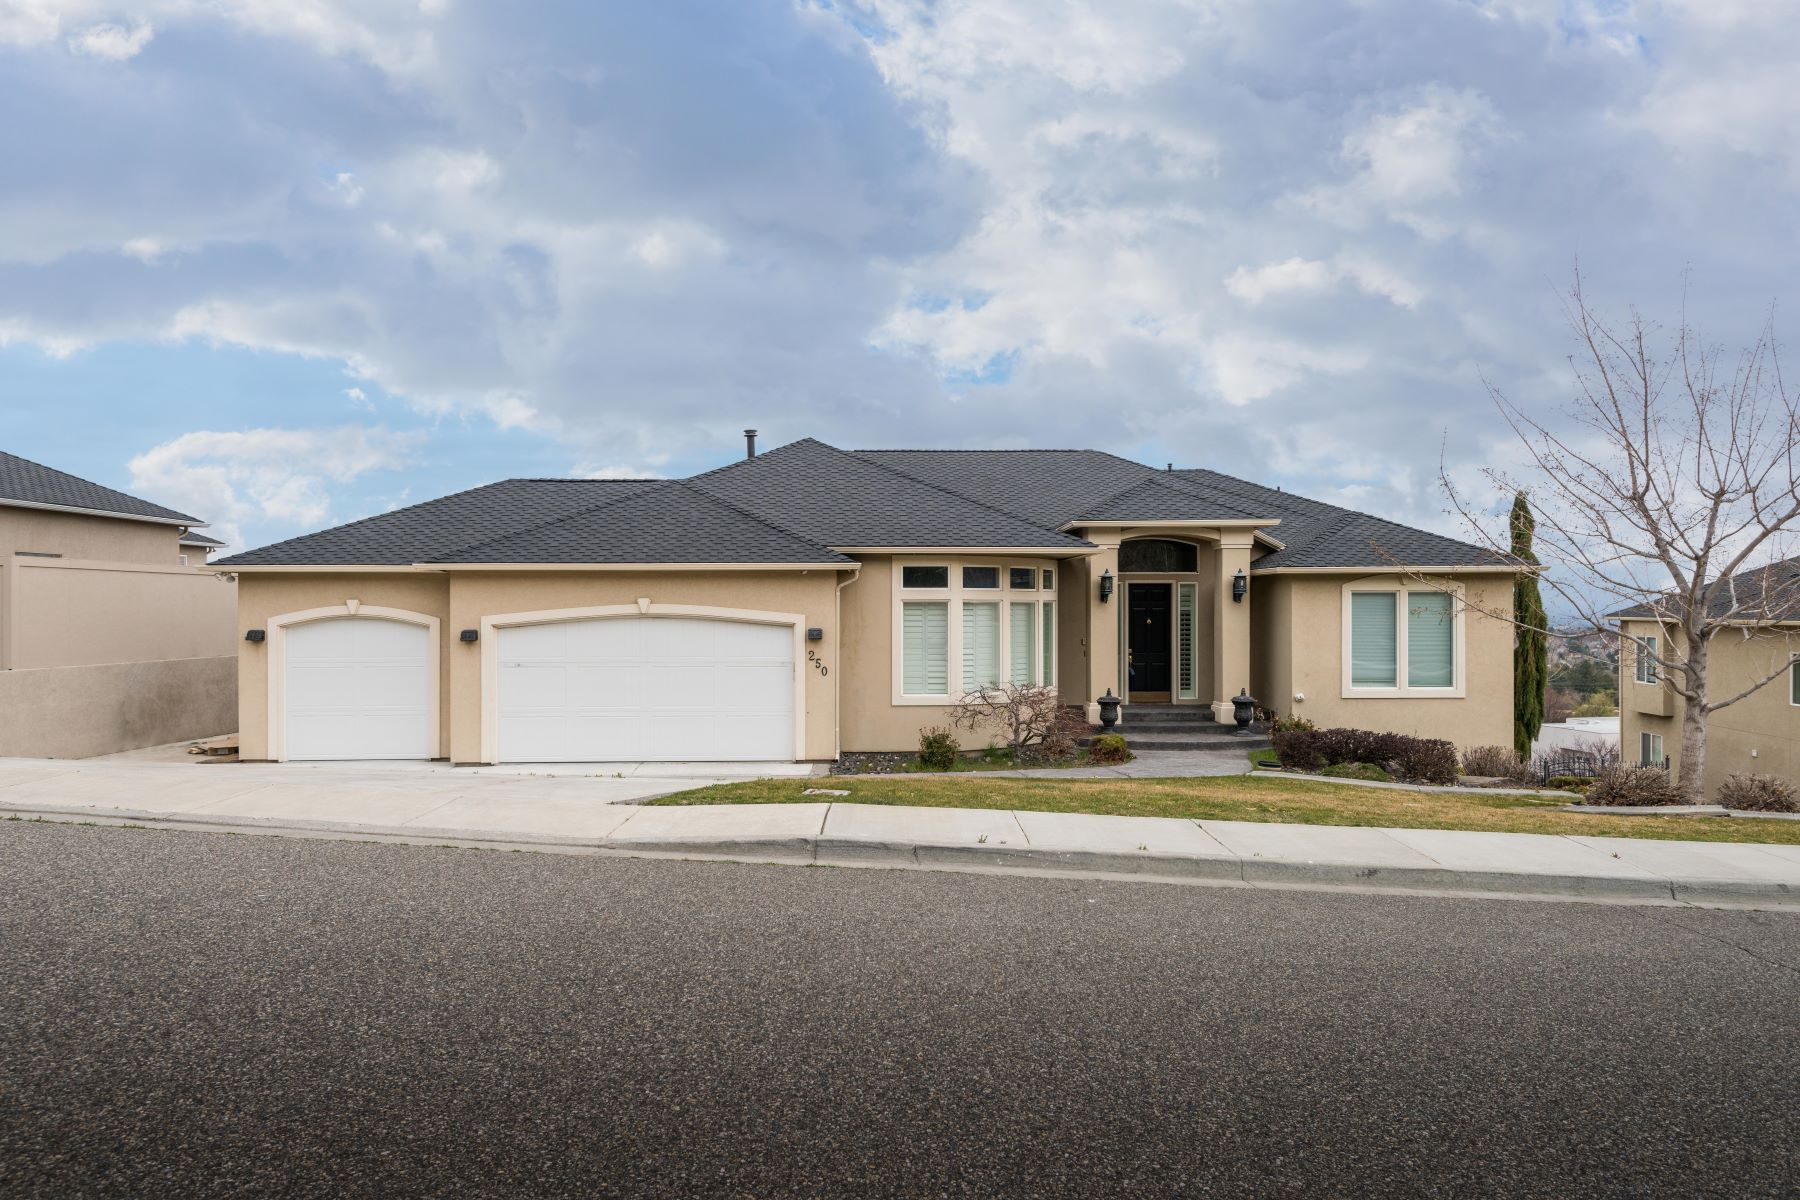 Single Family Homes for Sale at River View 250 Meadowridge Loop Richland, Washington 99352 United States